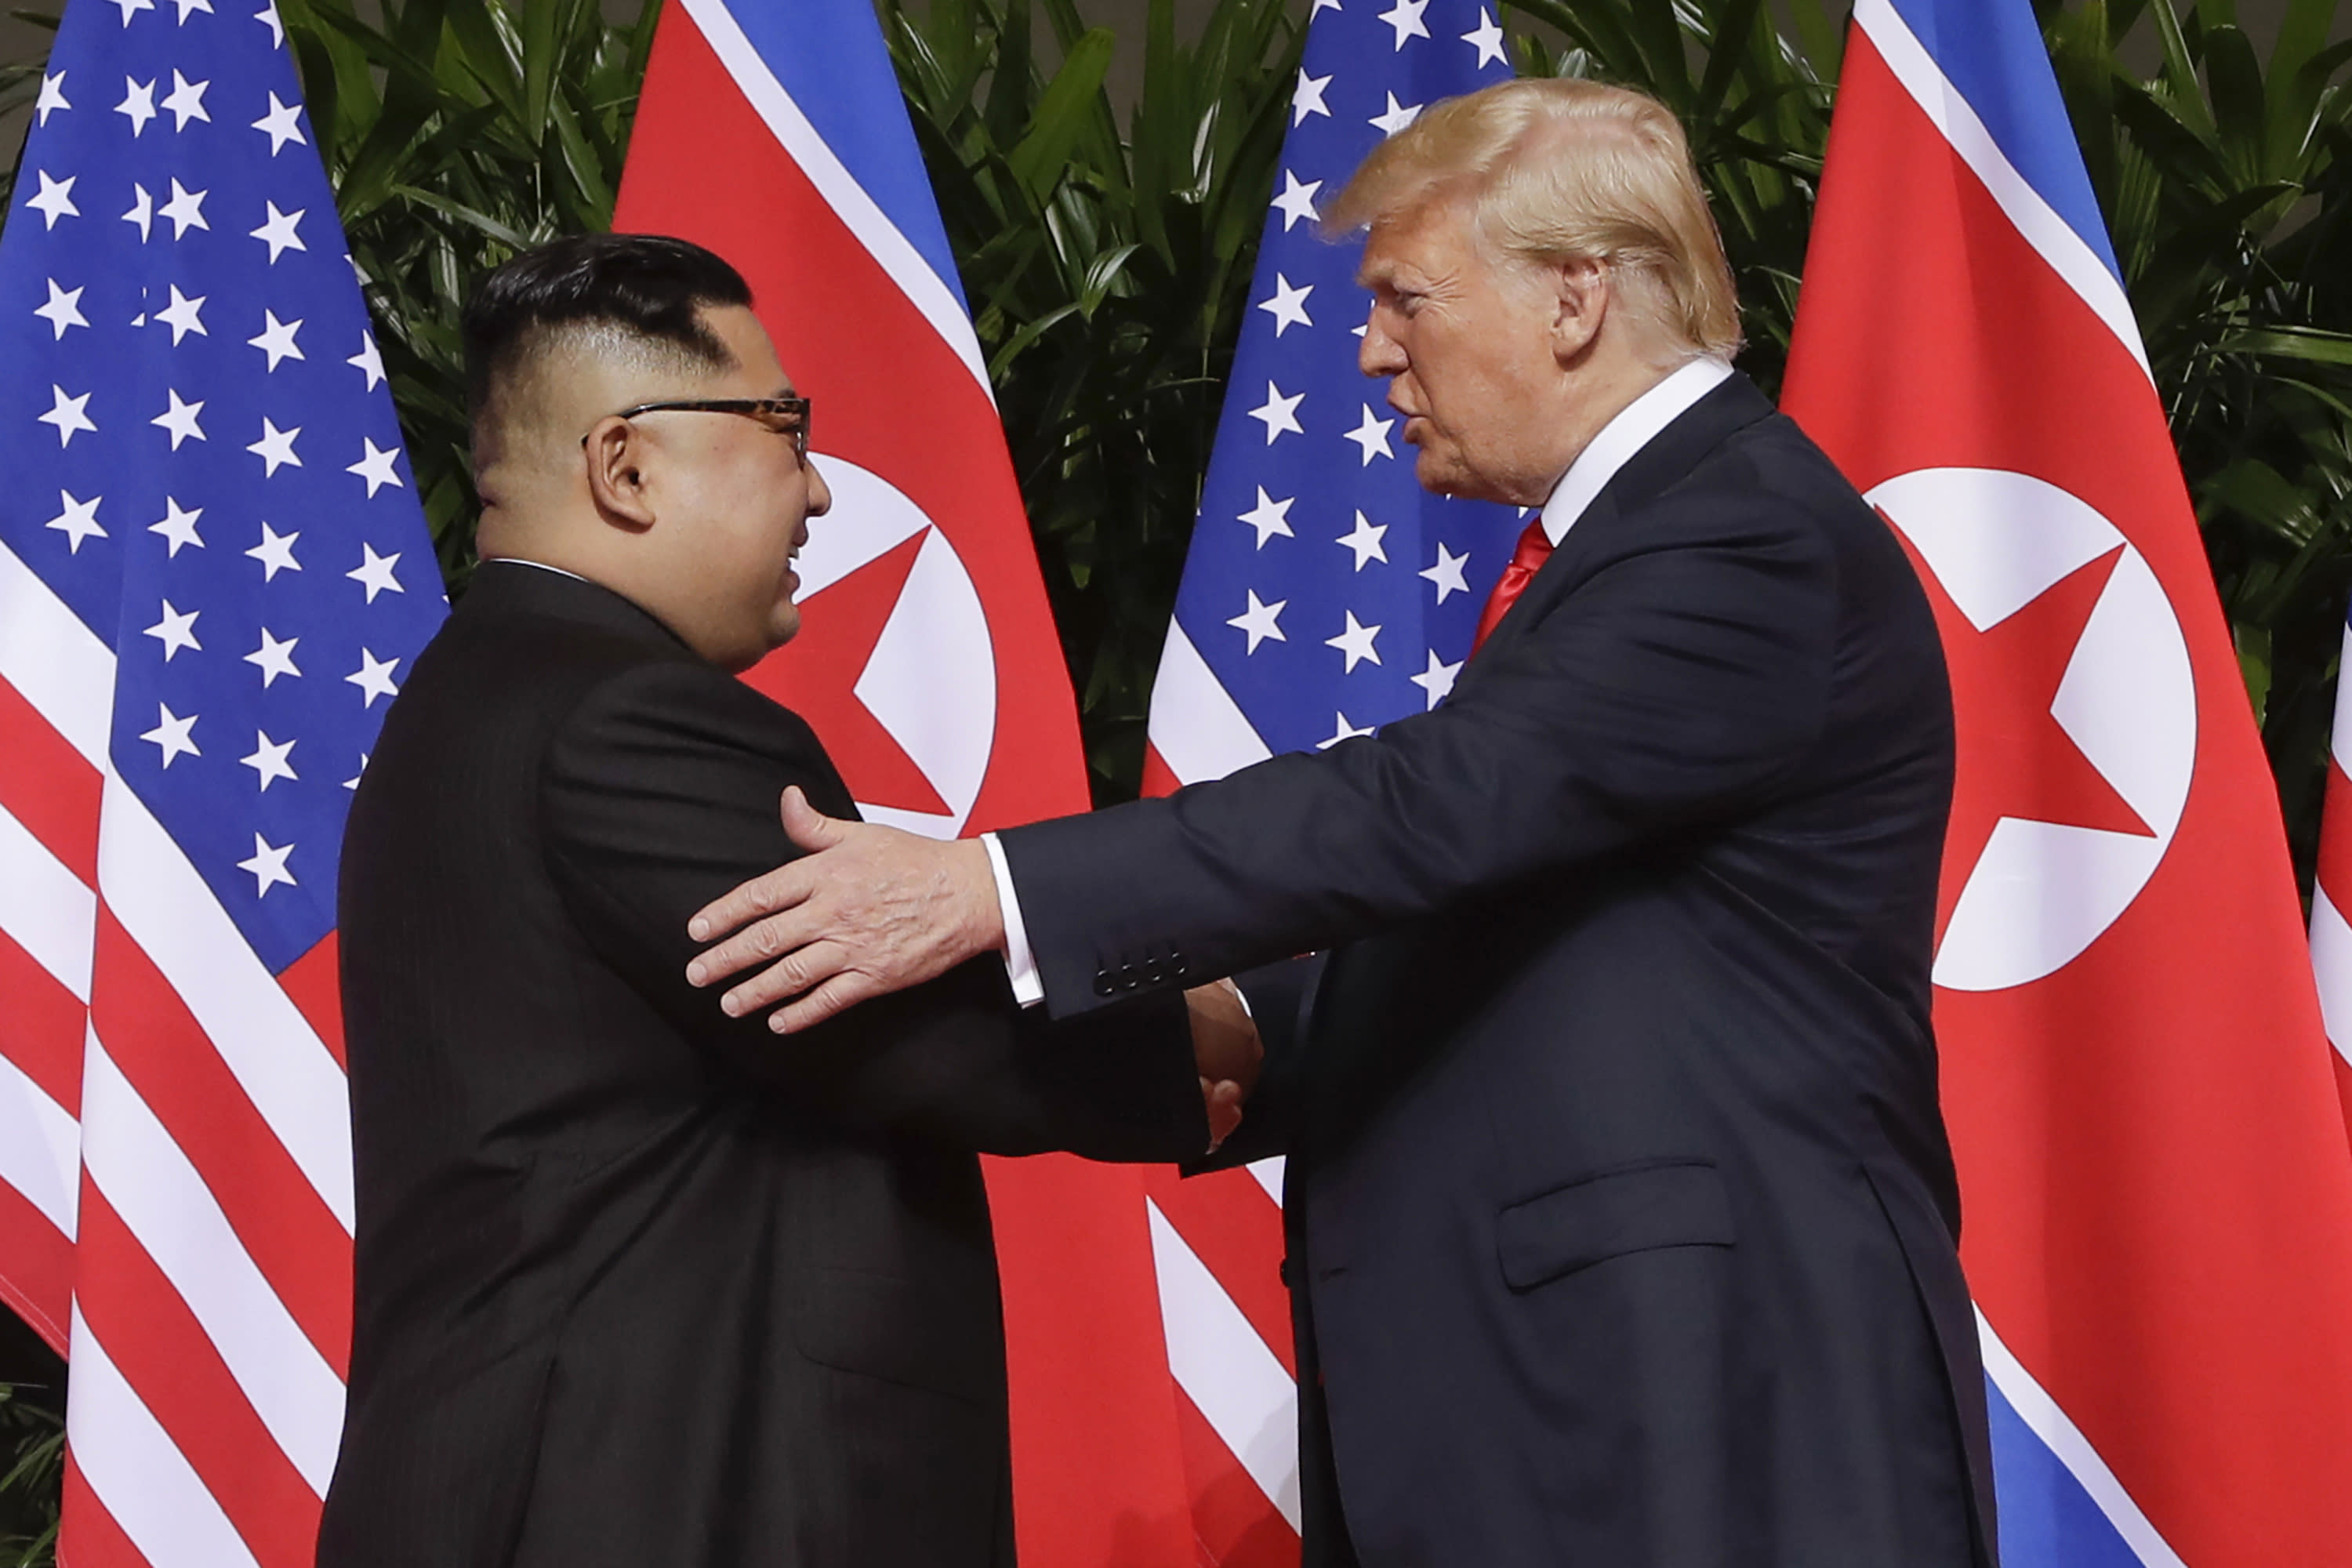 FILE - In this June 12, 2018, file photo, U.S. President Donald Trump, right, shakes hands with North Korea leader Kim Jong Un at the Capella resort on Sentosa Island in Singapore. U.S. Secretary of State Mike Pompeo downplayed the possibility of another summit between President Donald Trump and North Korean leader Kim Jong Un before the U.S. presidential election, saying Trump would only want to engage if there were real prospects of progress. (AP Photo/Evan Vucci, File)